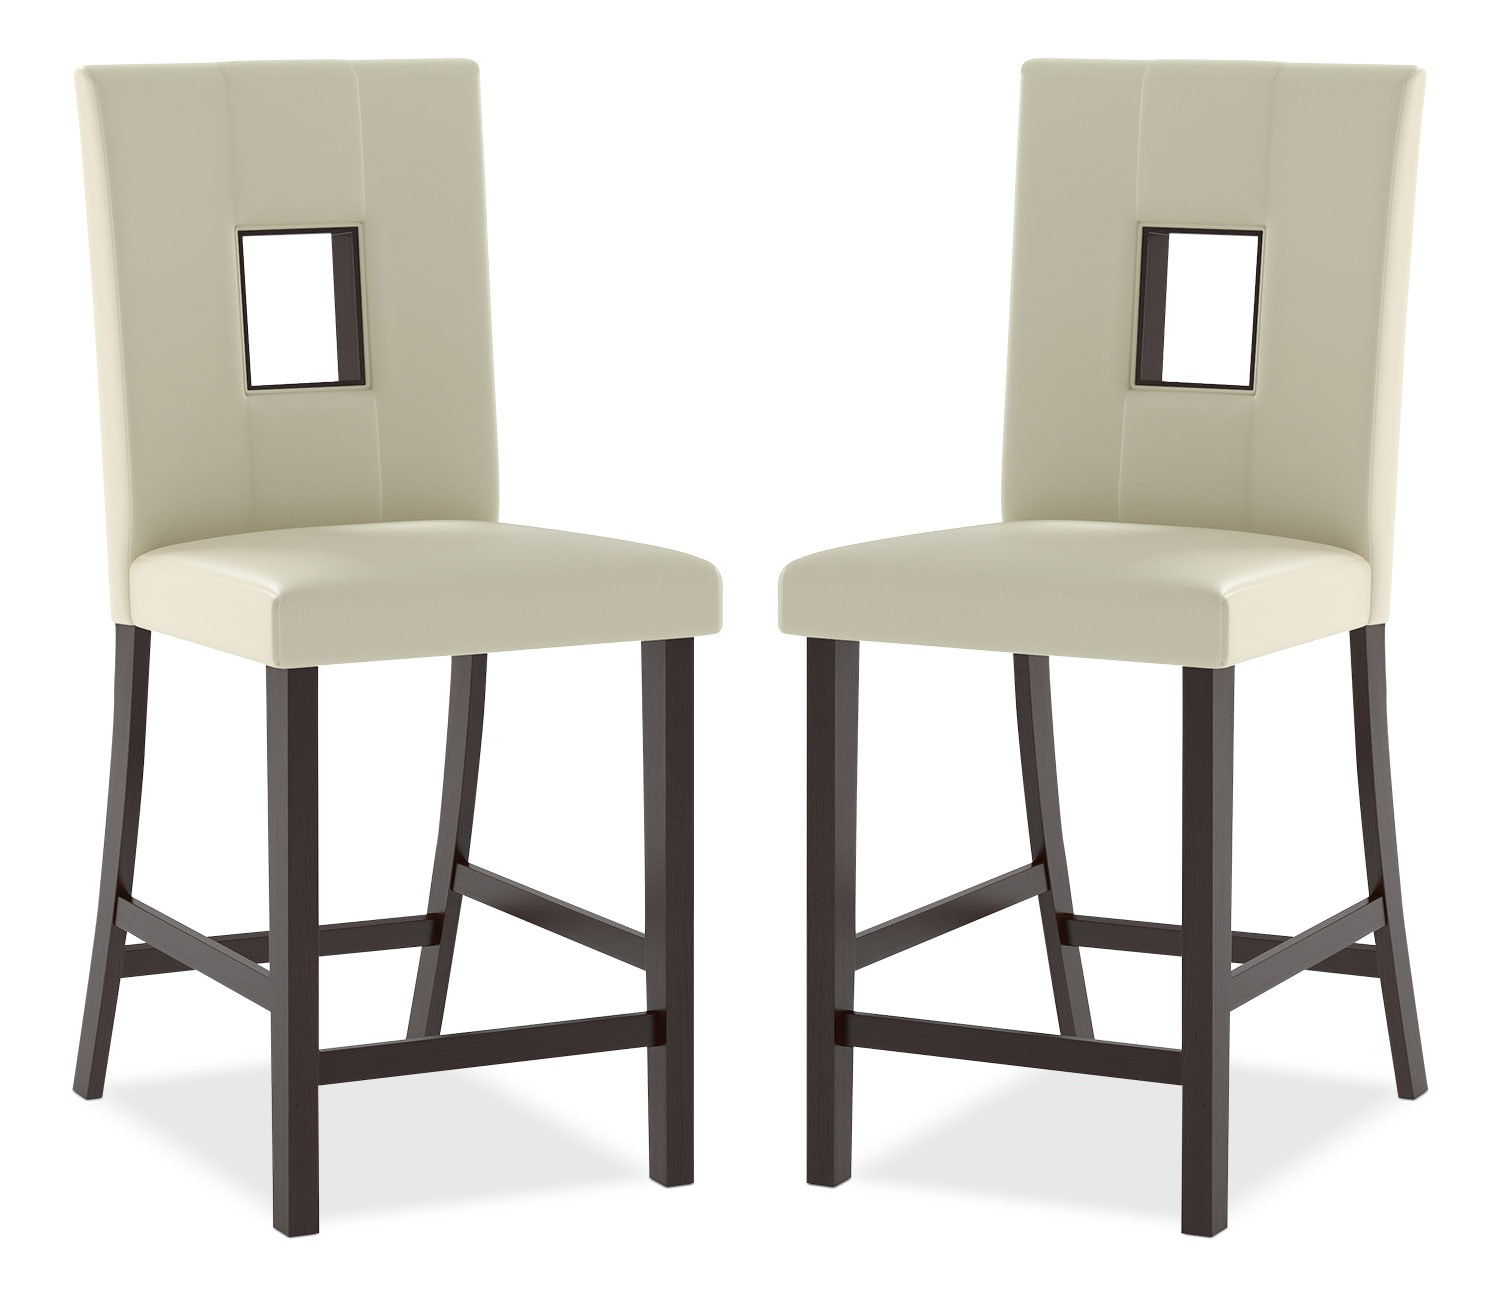 Bistro Counter-Height Dining Chair, Set of 2 – White